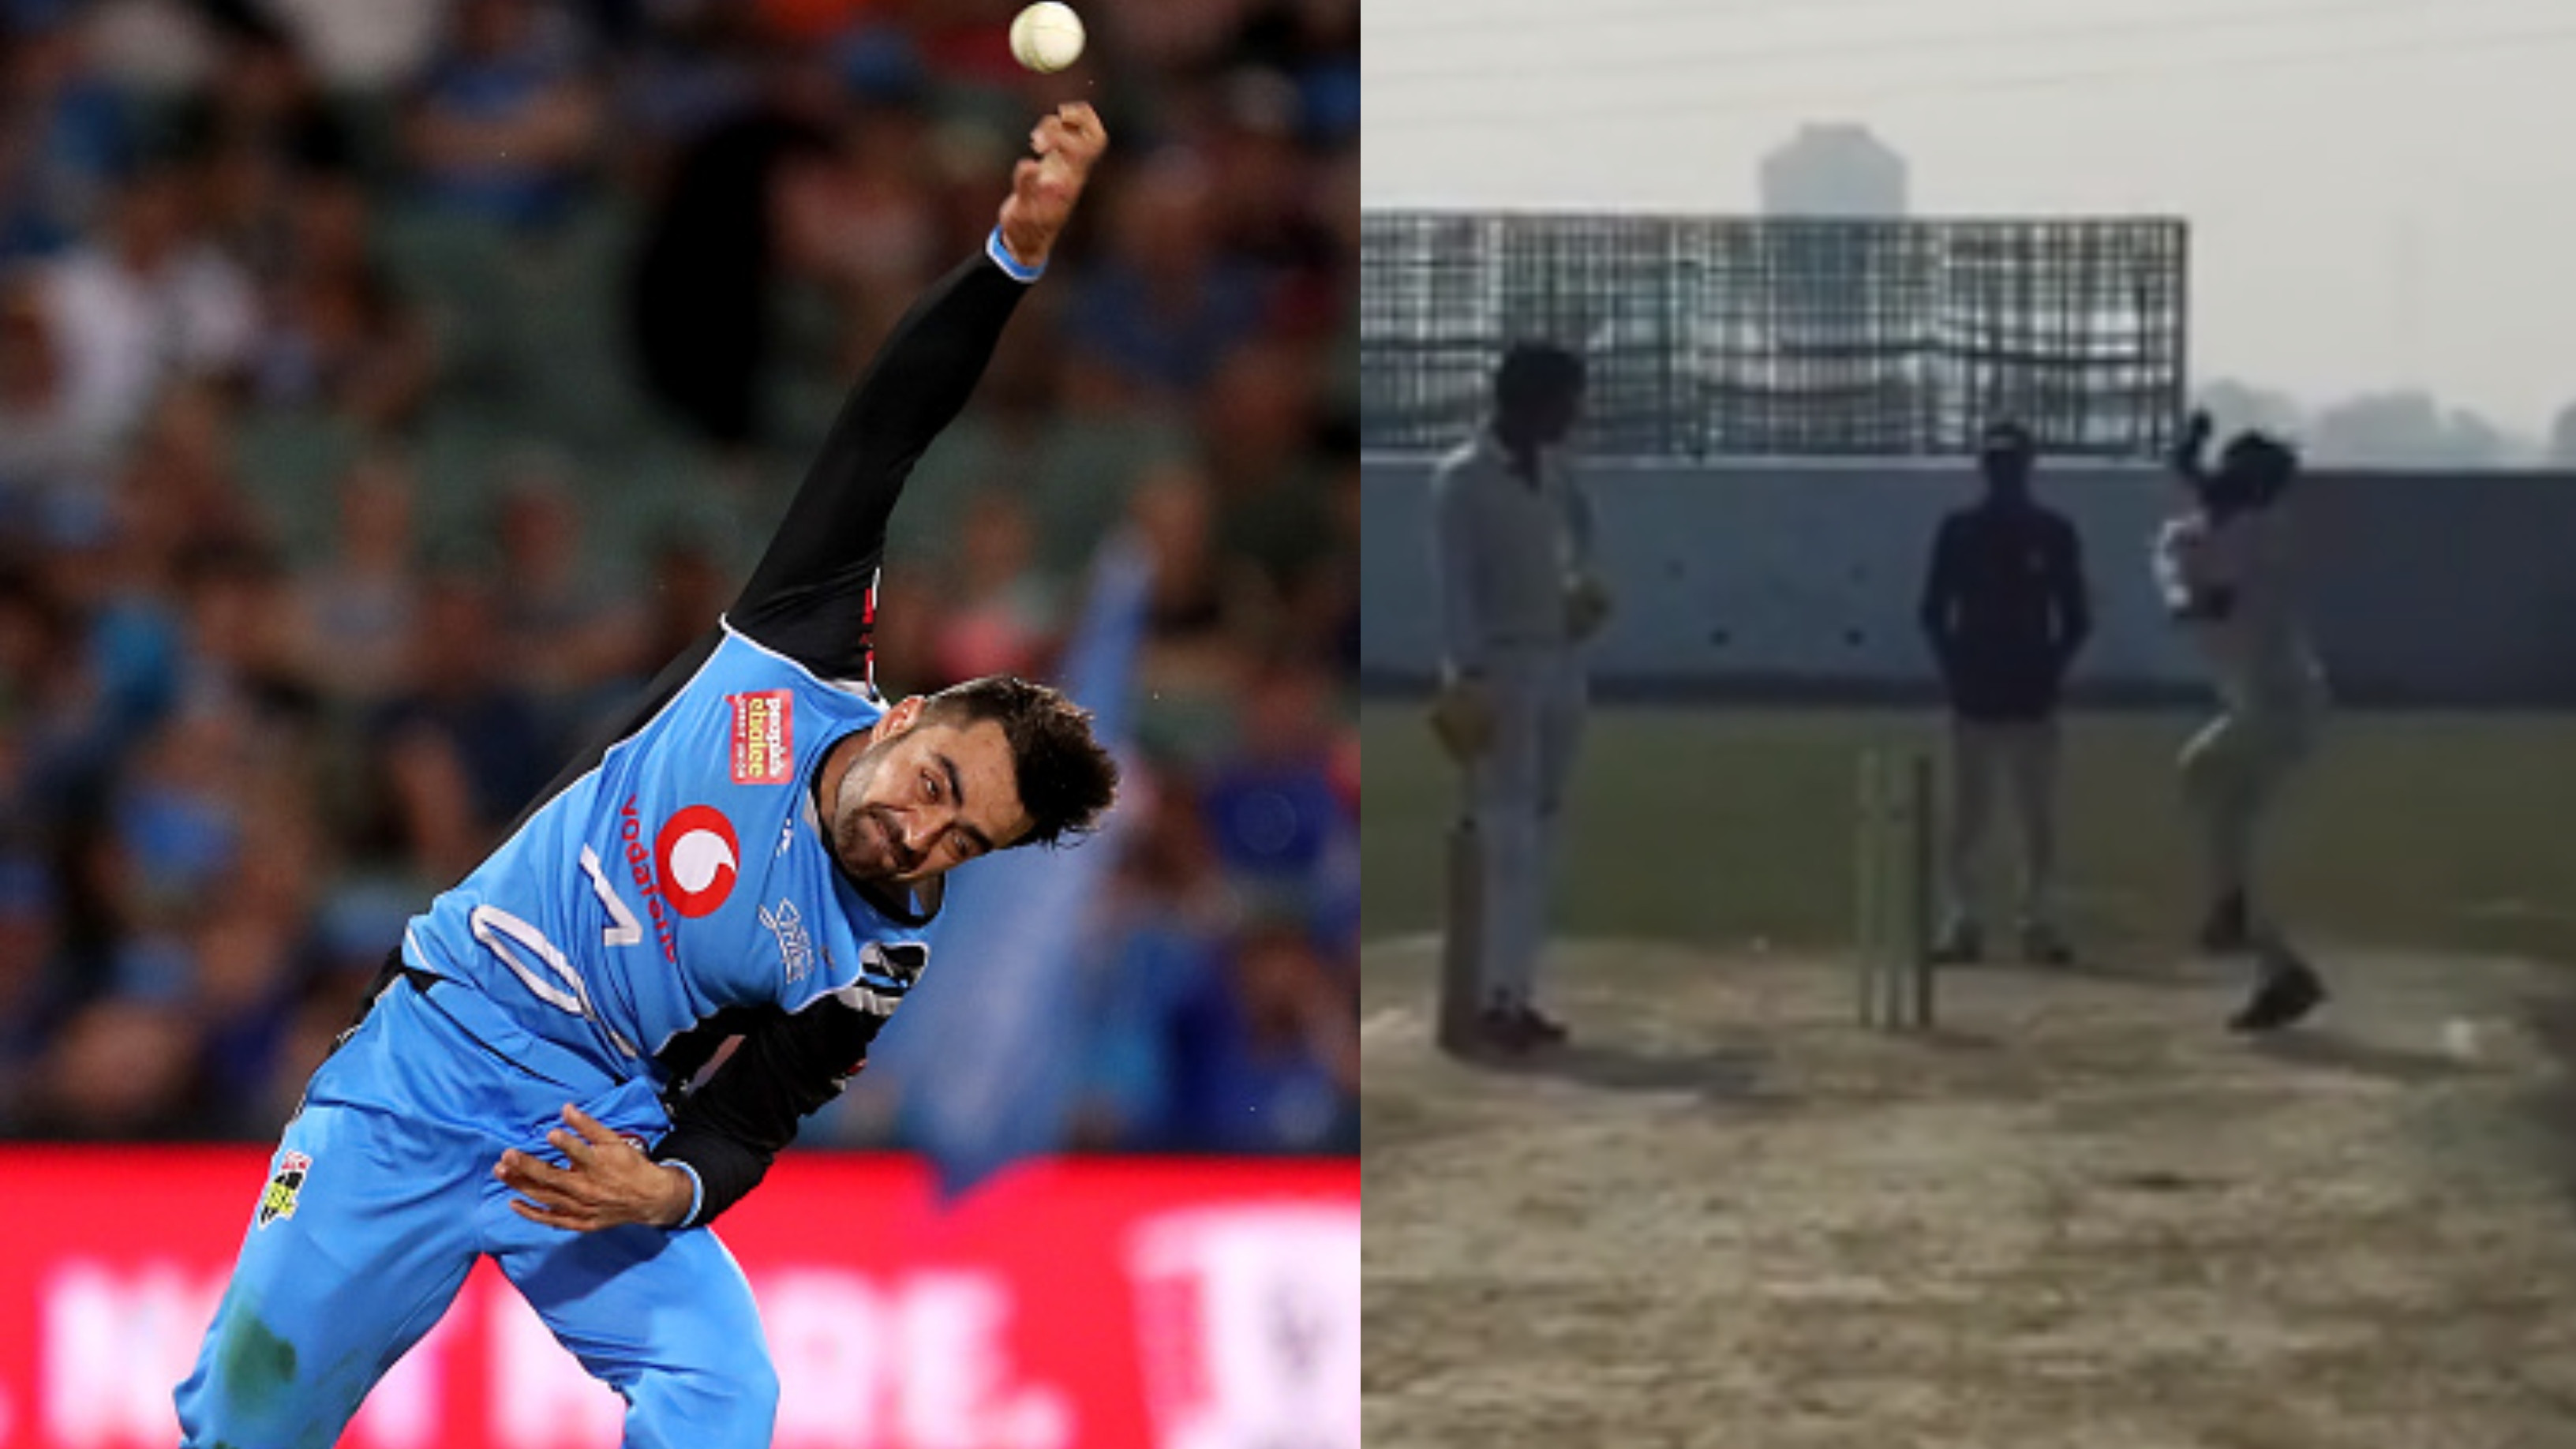 WATCH -Deepak Chahar introduces India's own Rashid Khan